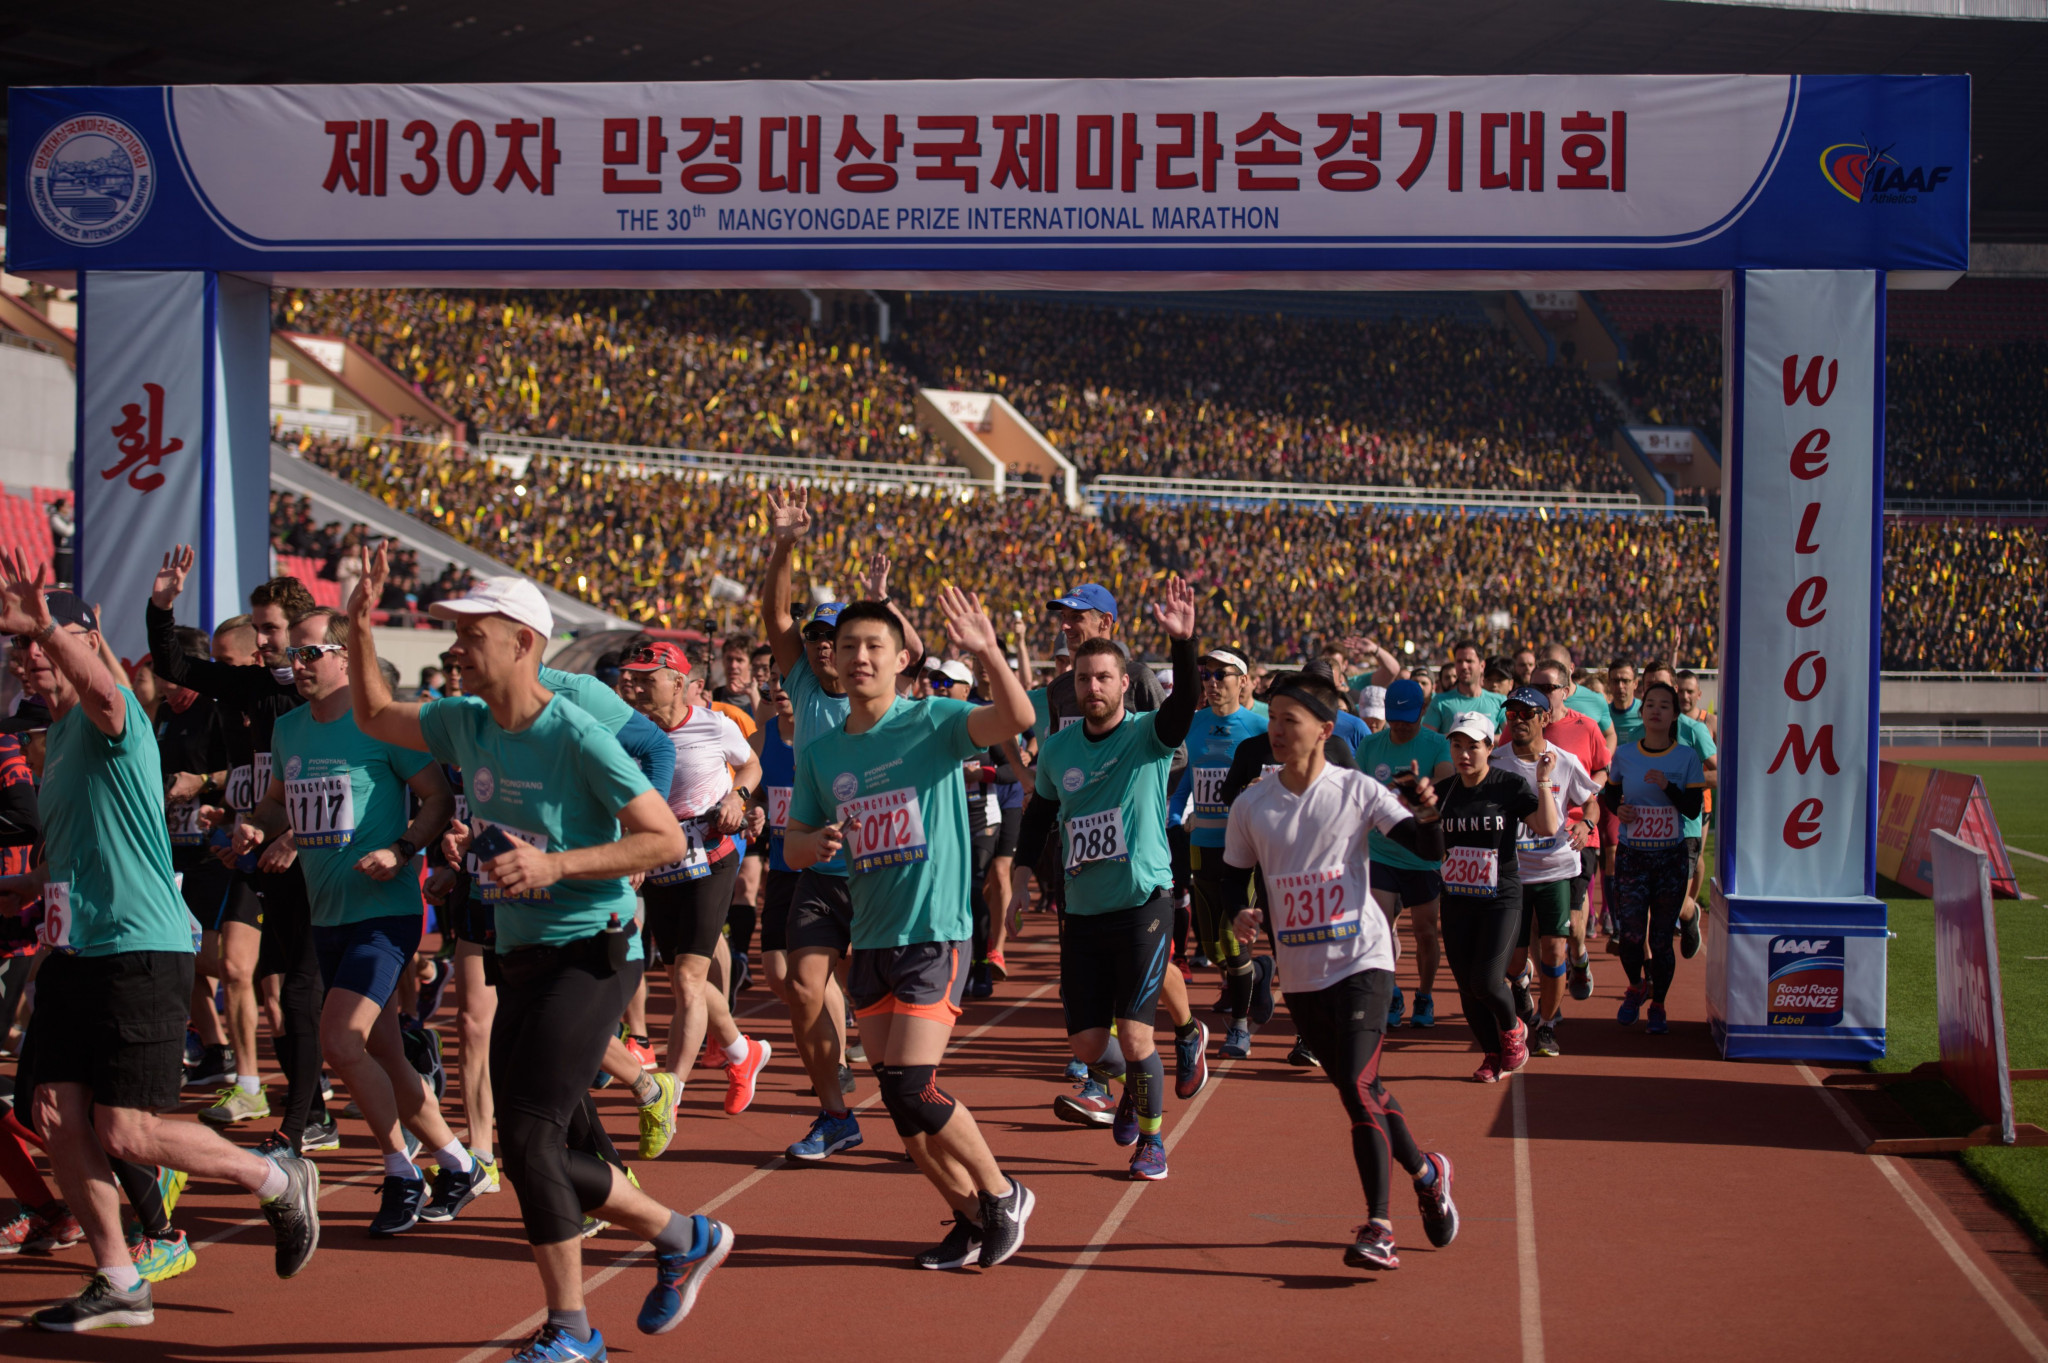 Pyongyang Marathon latest sporting event cancelled due to coronavirus outbreak